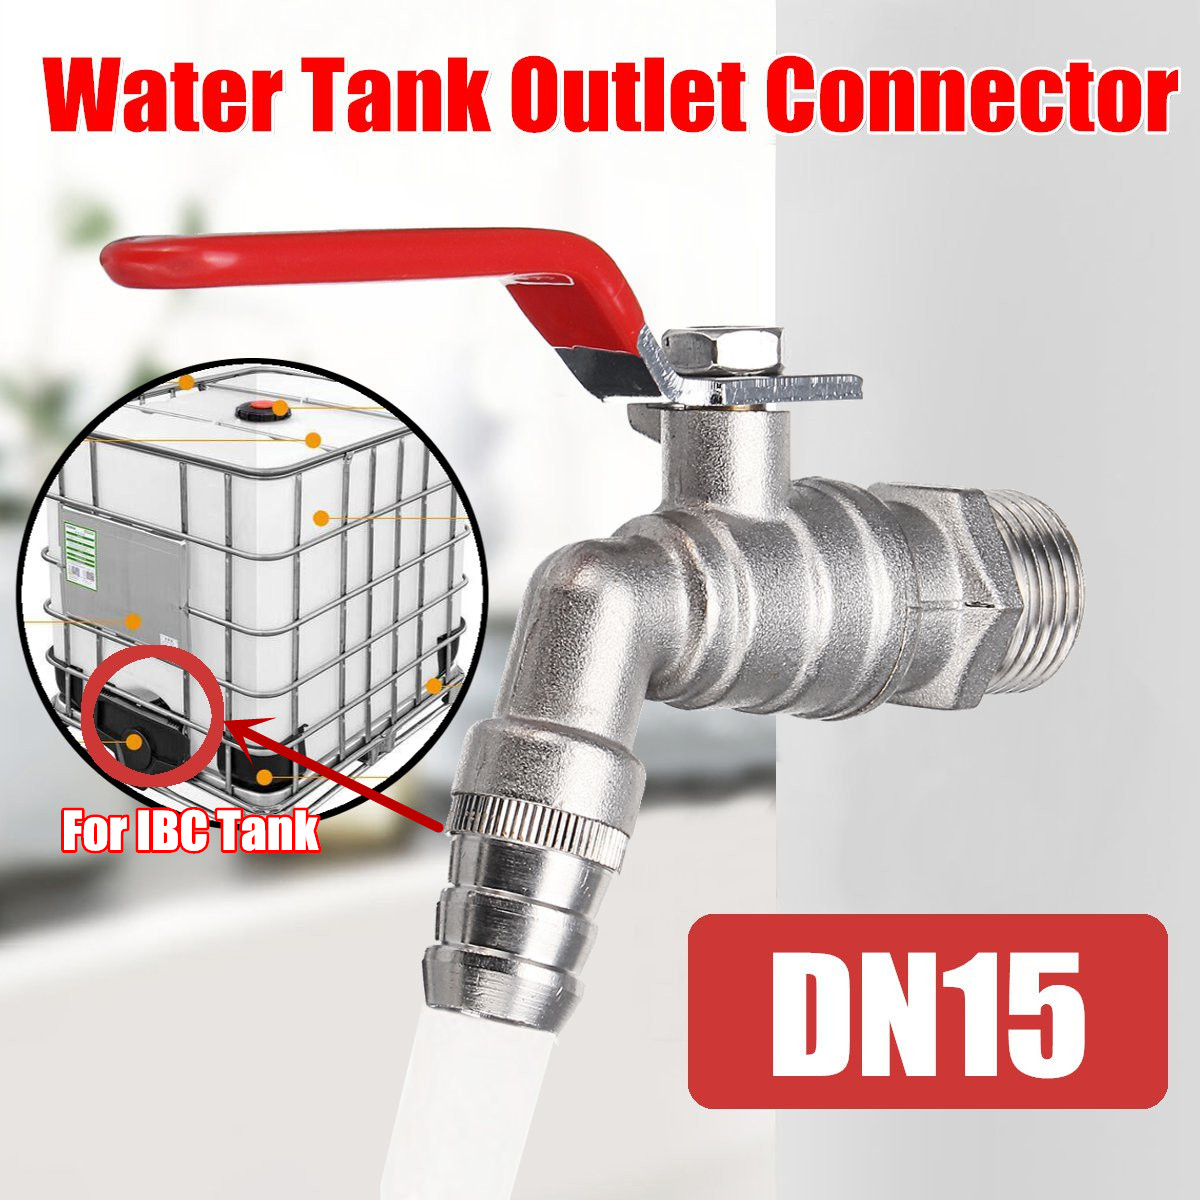 DN15 Water Tank Outlet Connector 104 Faucet Thread Mounting For IBC Tank Tool Parts Brass